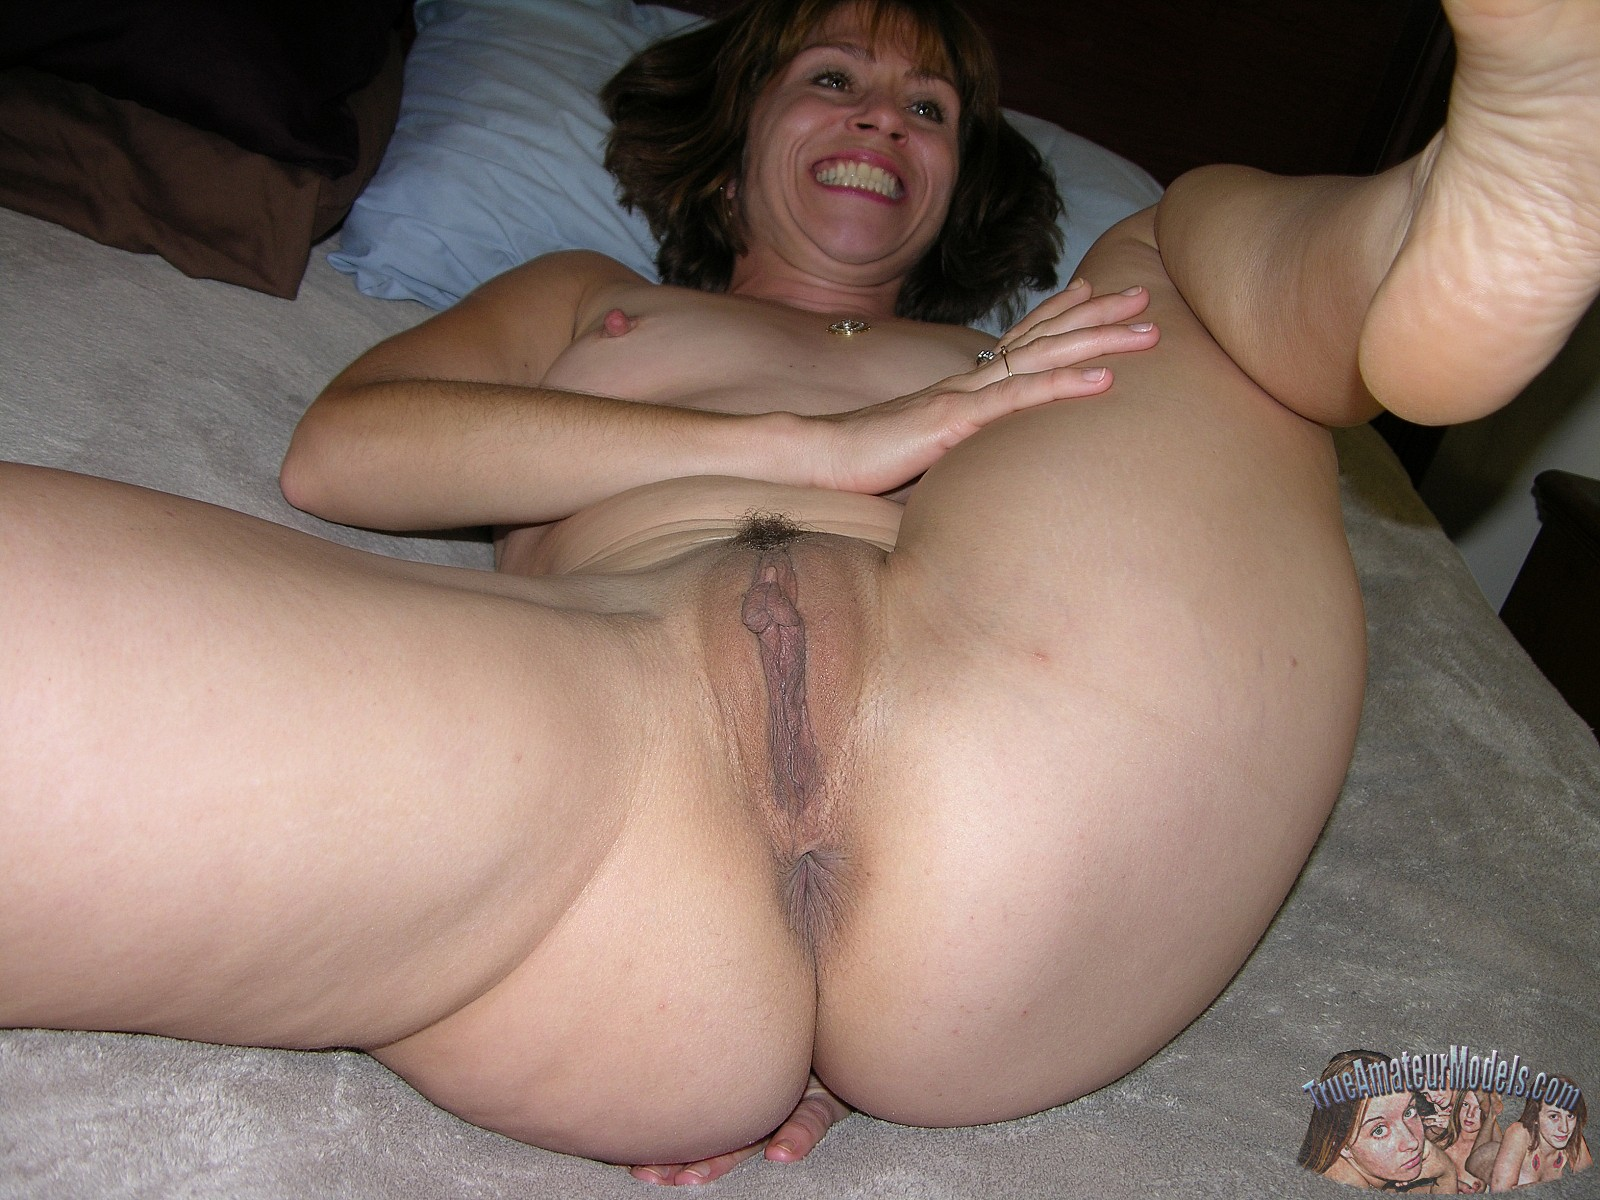 All free old amature nudes